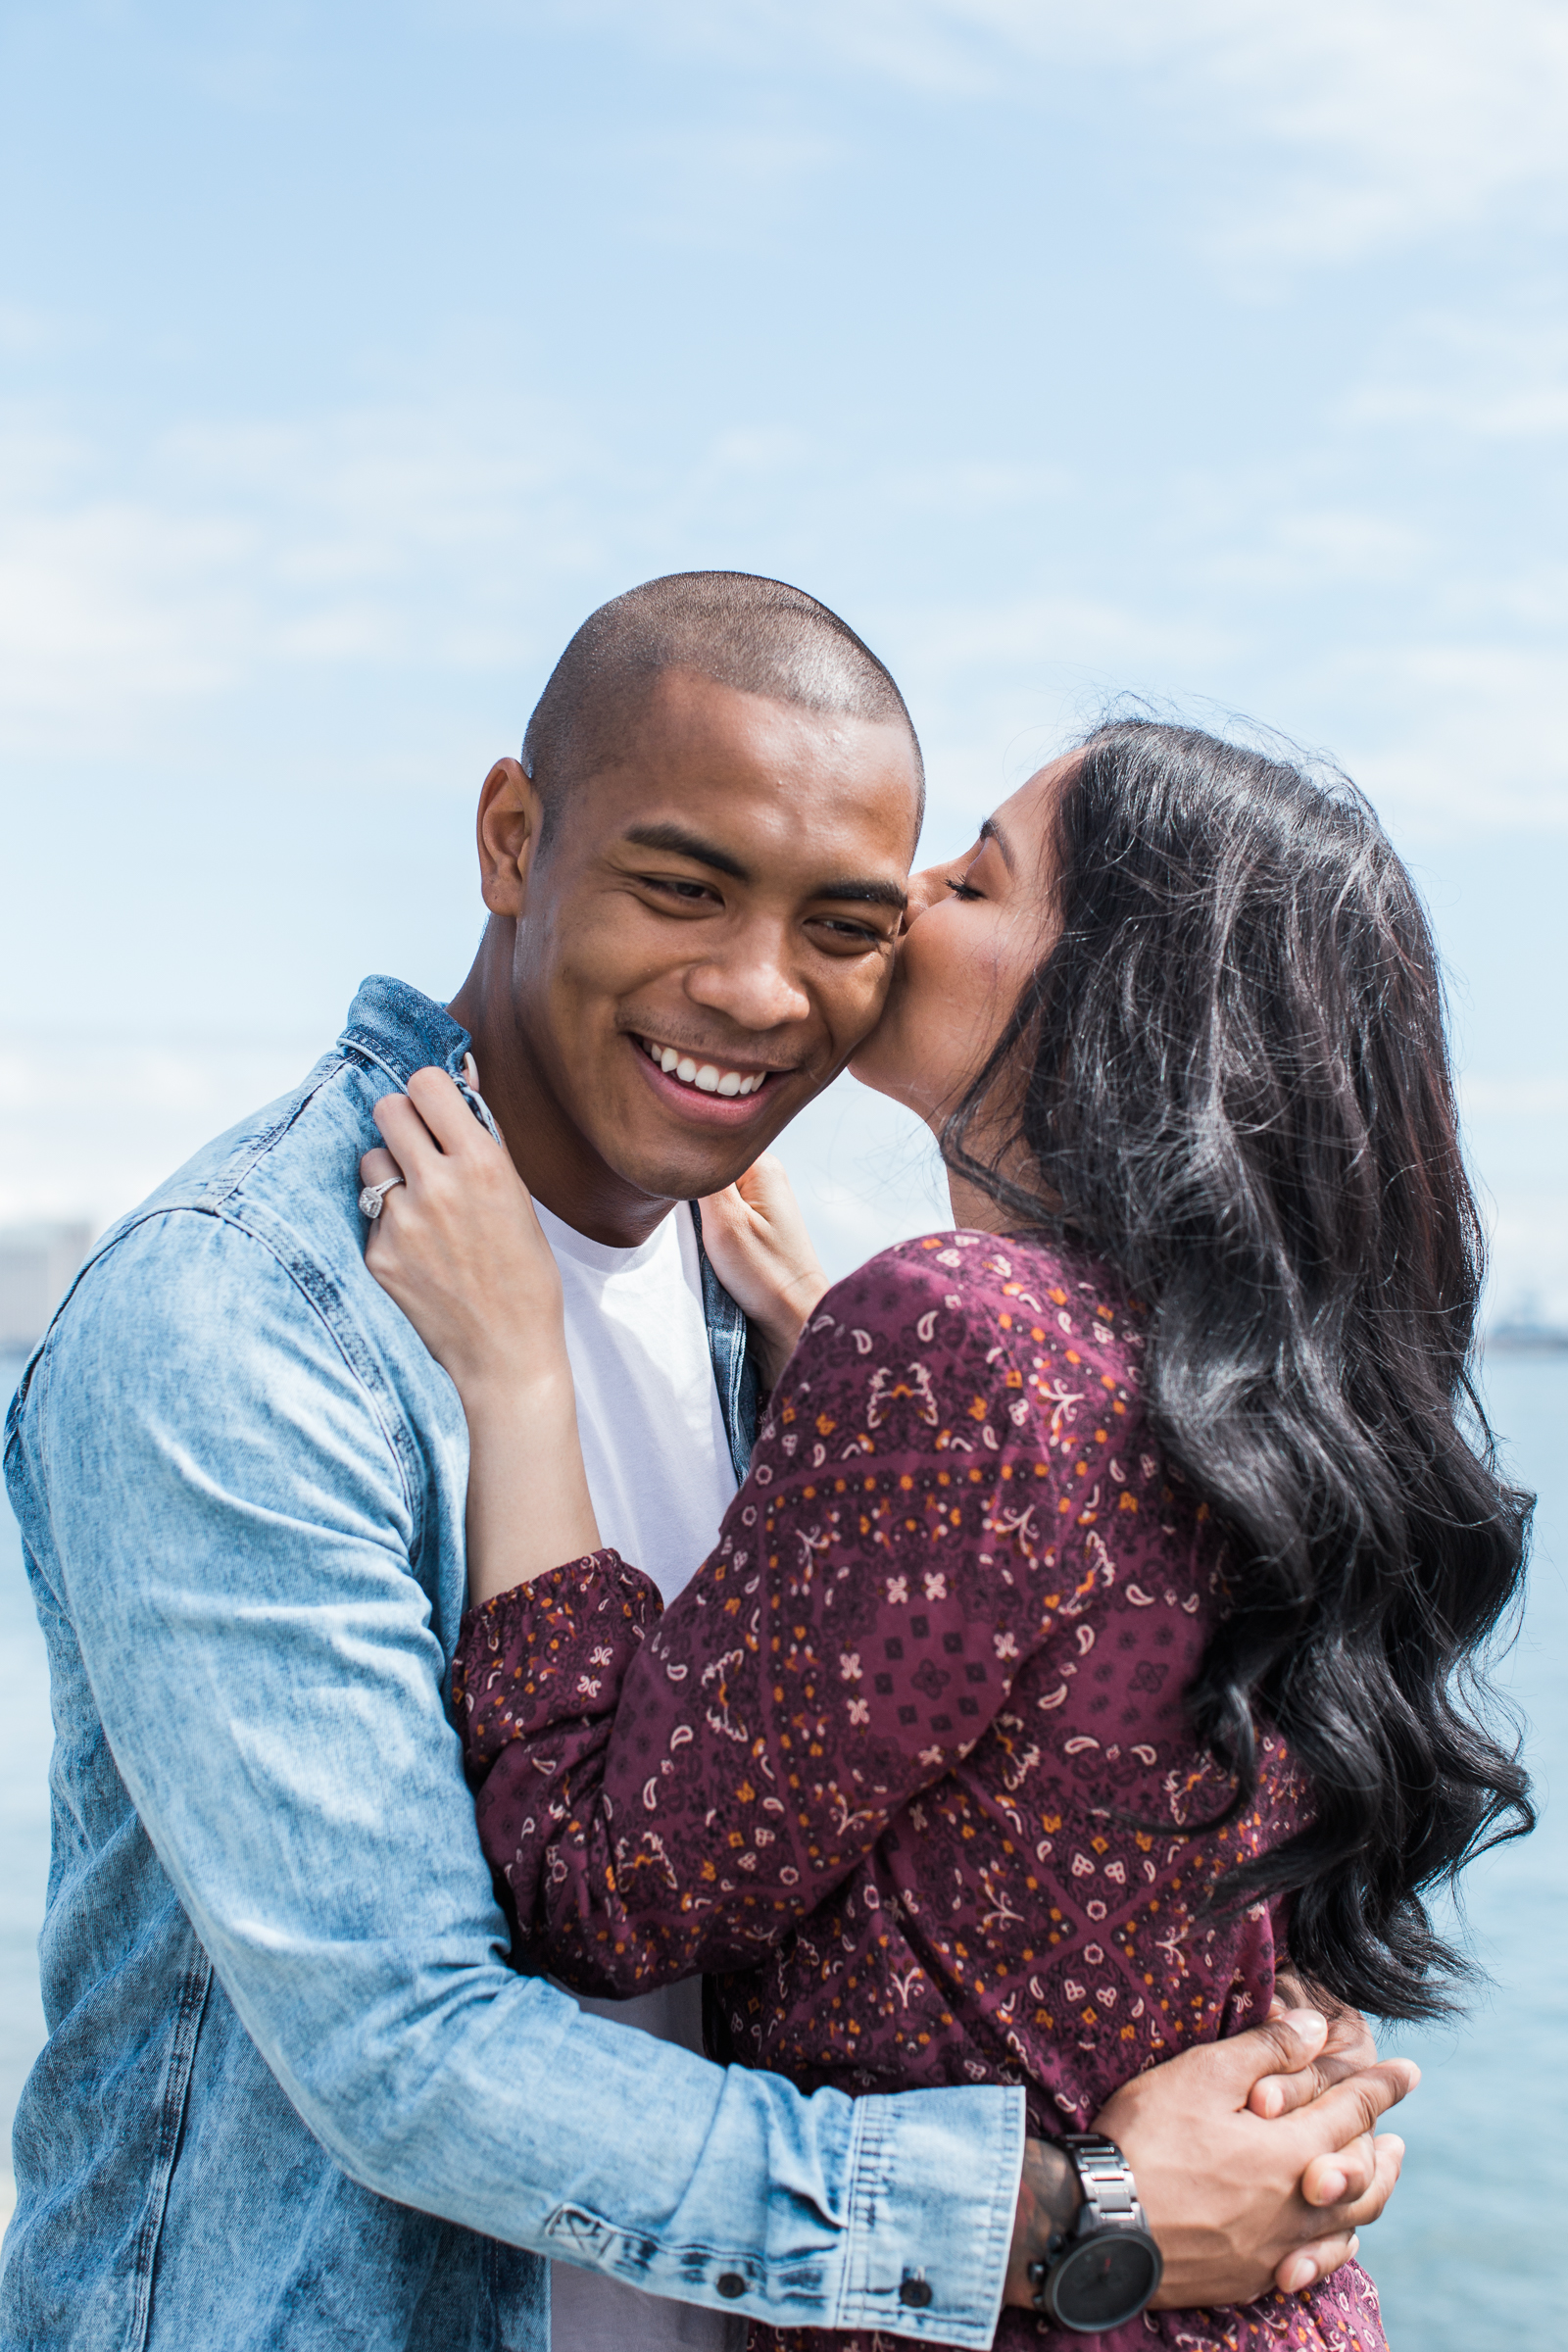 sophia-elizabeth-photography-harbor-island-san-diego-airport-downtown-bay-engaged-isaidyes (108 of 121).jpg